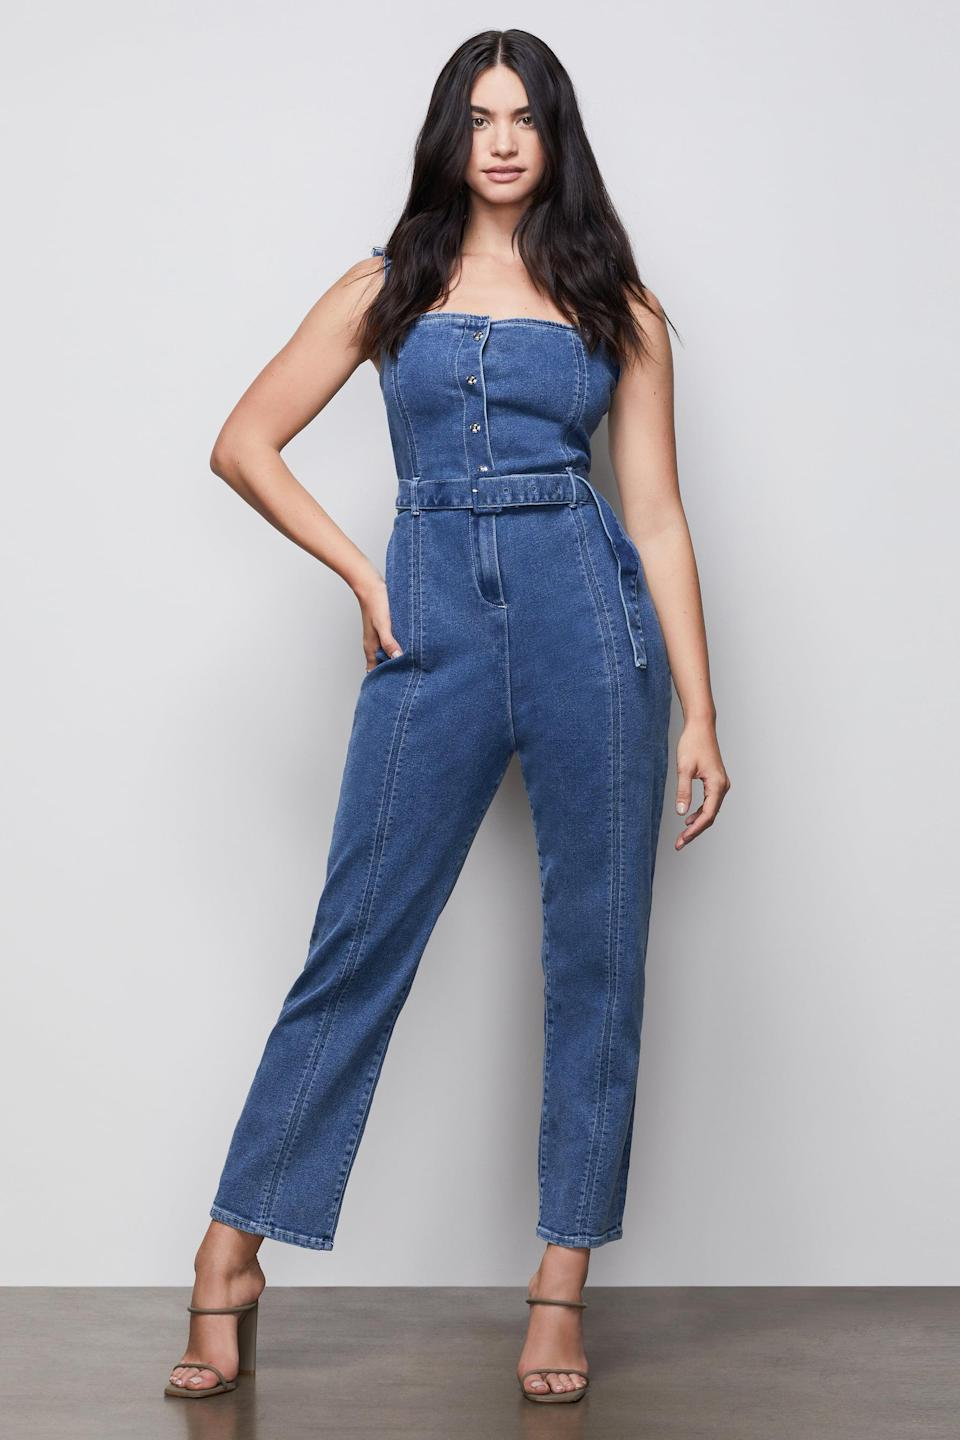 <p>Black-owned brand, Good American makes the coziest denim items and this <span>Belted Corset Jumpsuit</span> ($119) is no exception. As much as I love overalls and jumpsuits, they often tend to creep or snug too tight in certain areas, this jumpsuit does the exact opposite. It stays in place and has great stretch to it. </p>